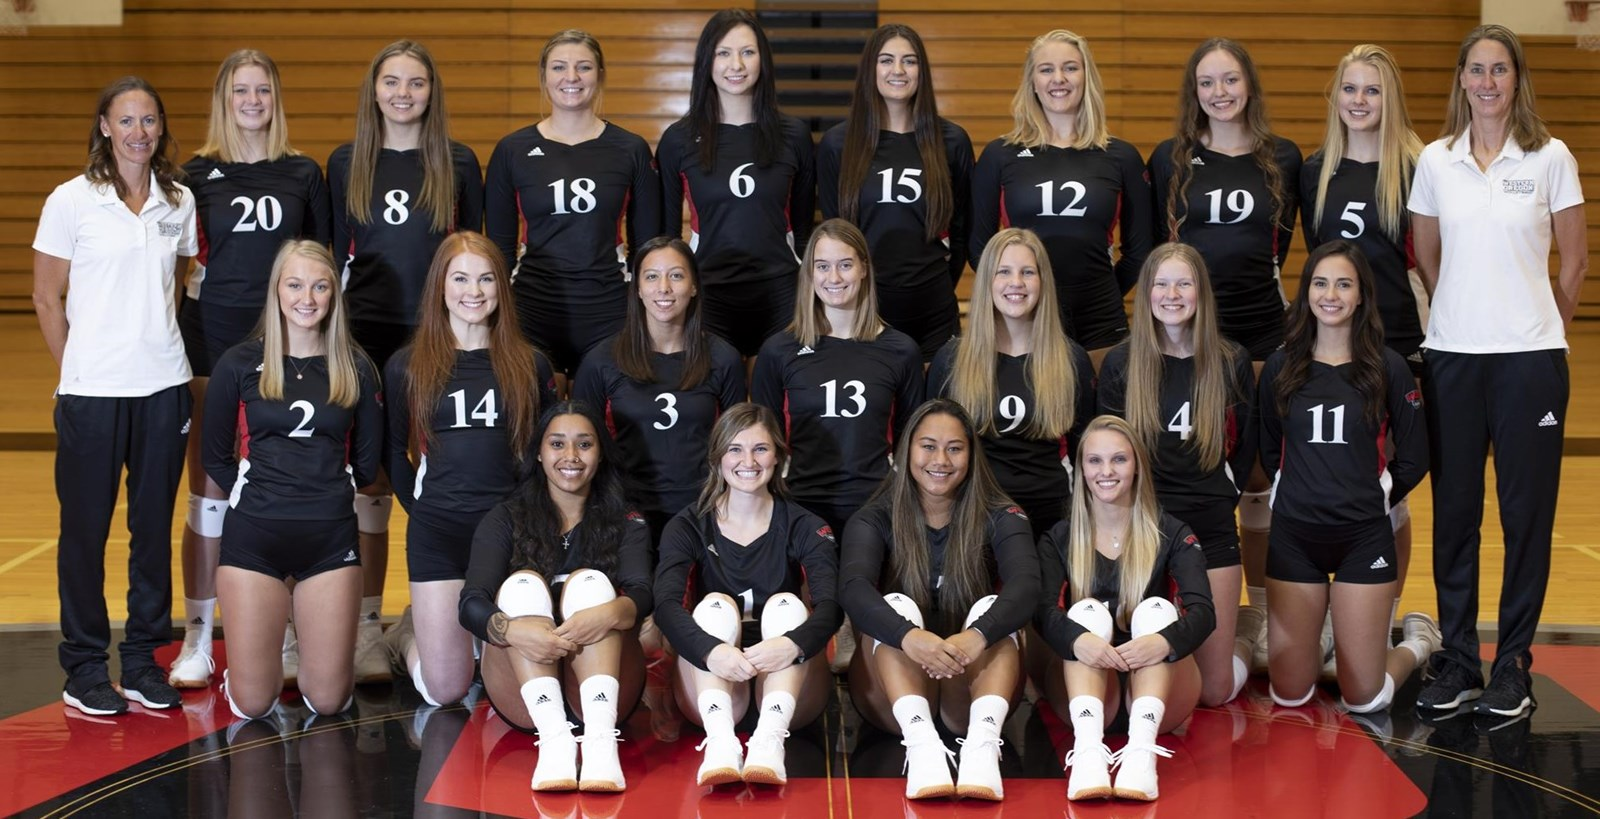 2019 Volleyball Roster Western Oregon University Athletics